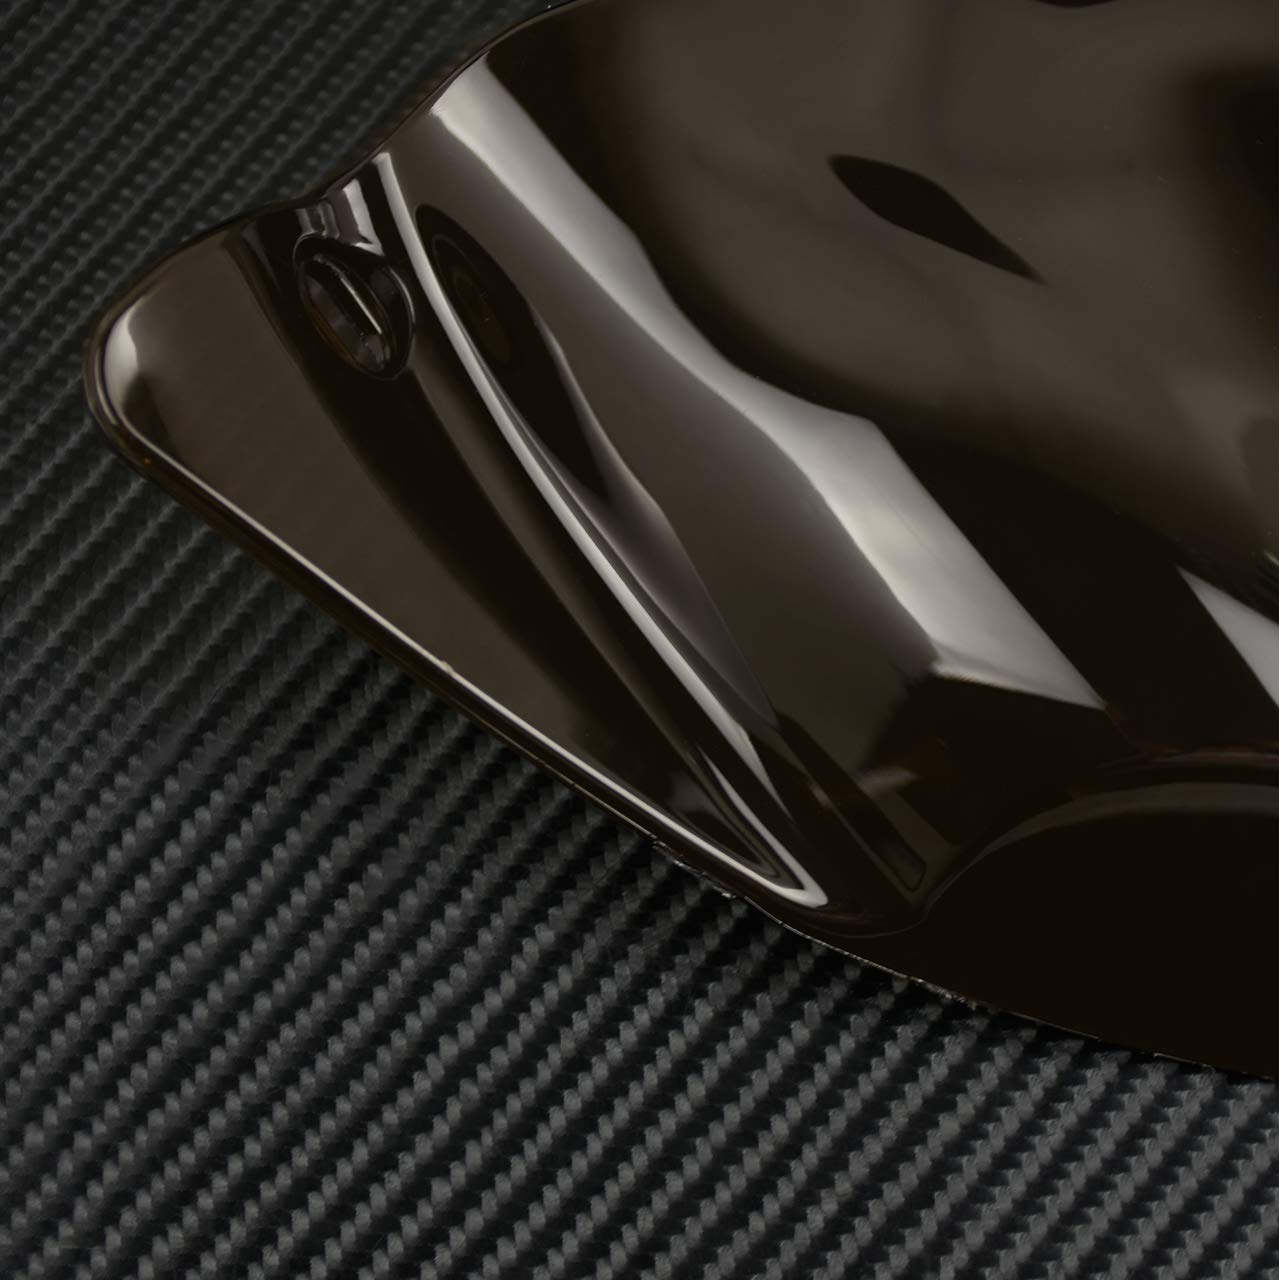 REBACKER Motorcycle Reflective Saddle Shields Air Heat Deflector Smoke For Harley Sporster Iron 883 1200 Forty Eight XL1200 2014-2019